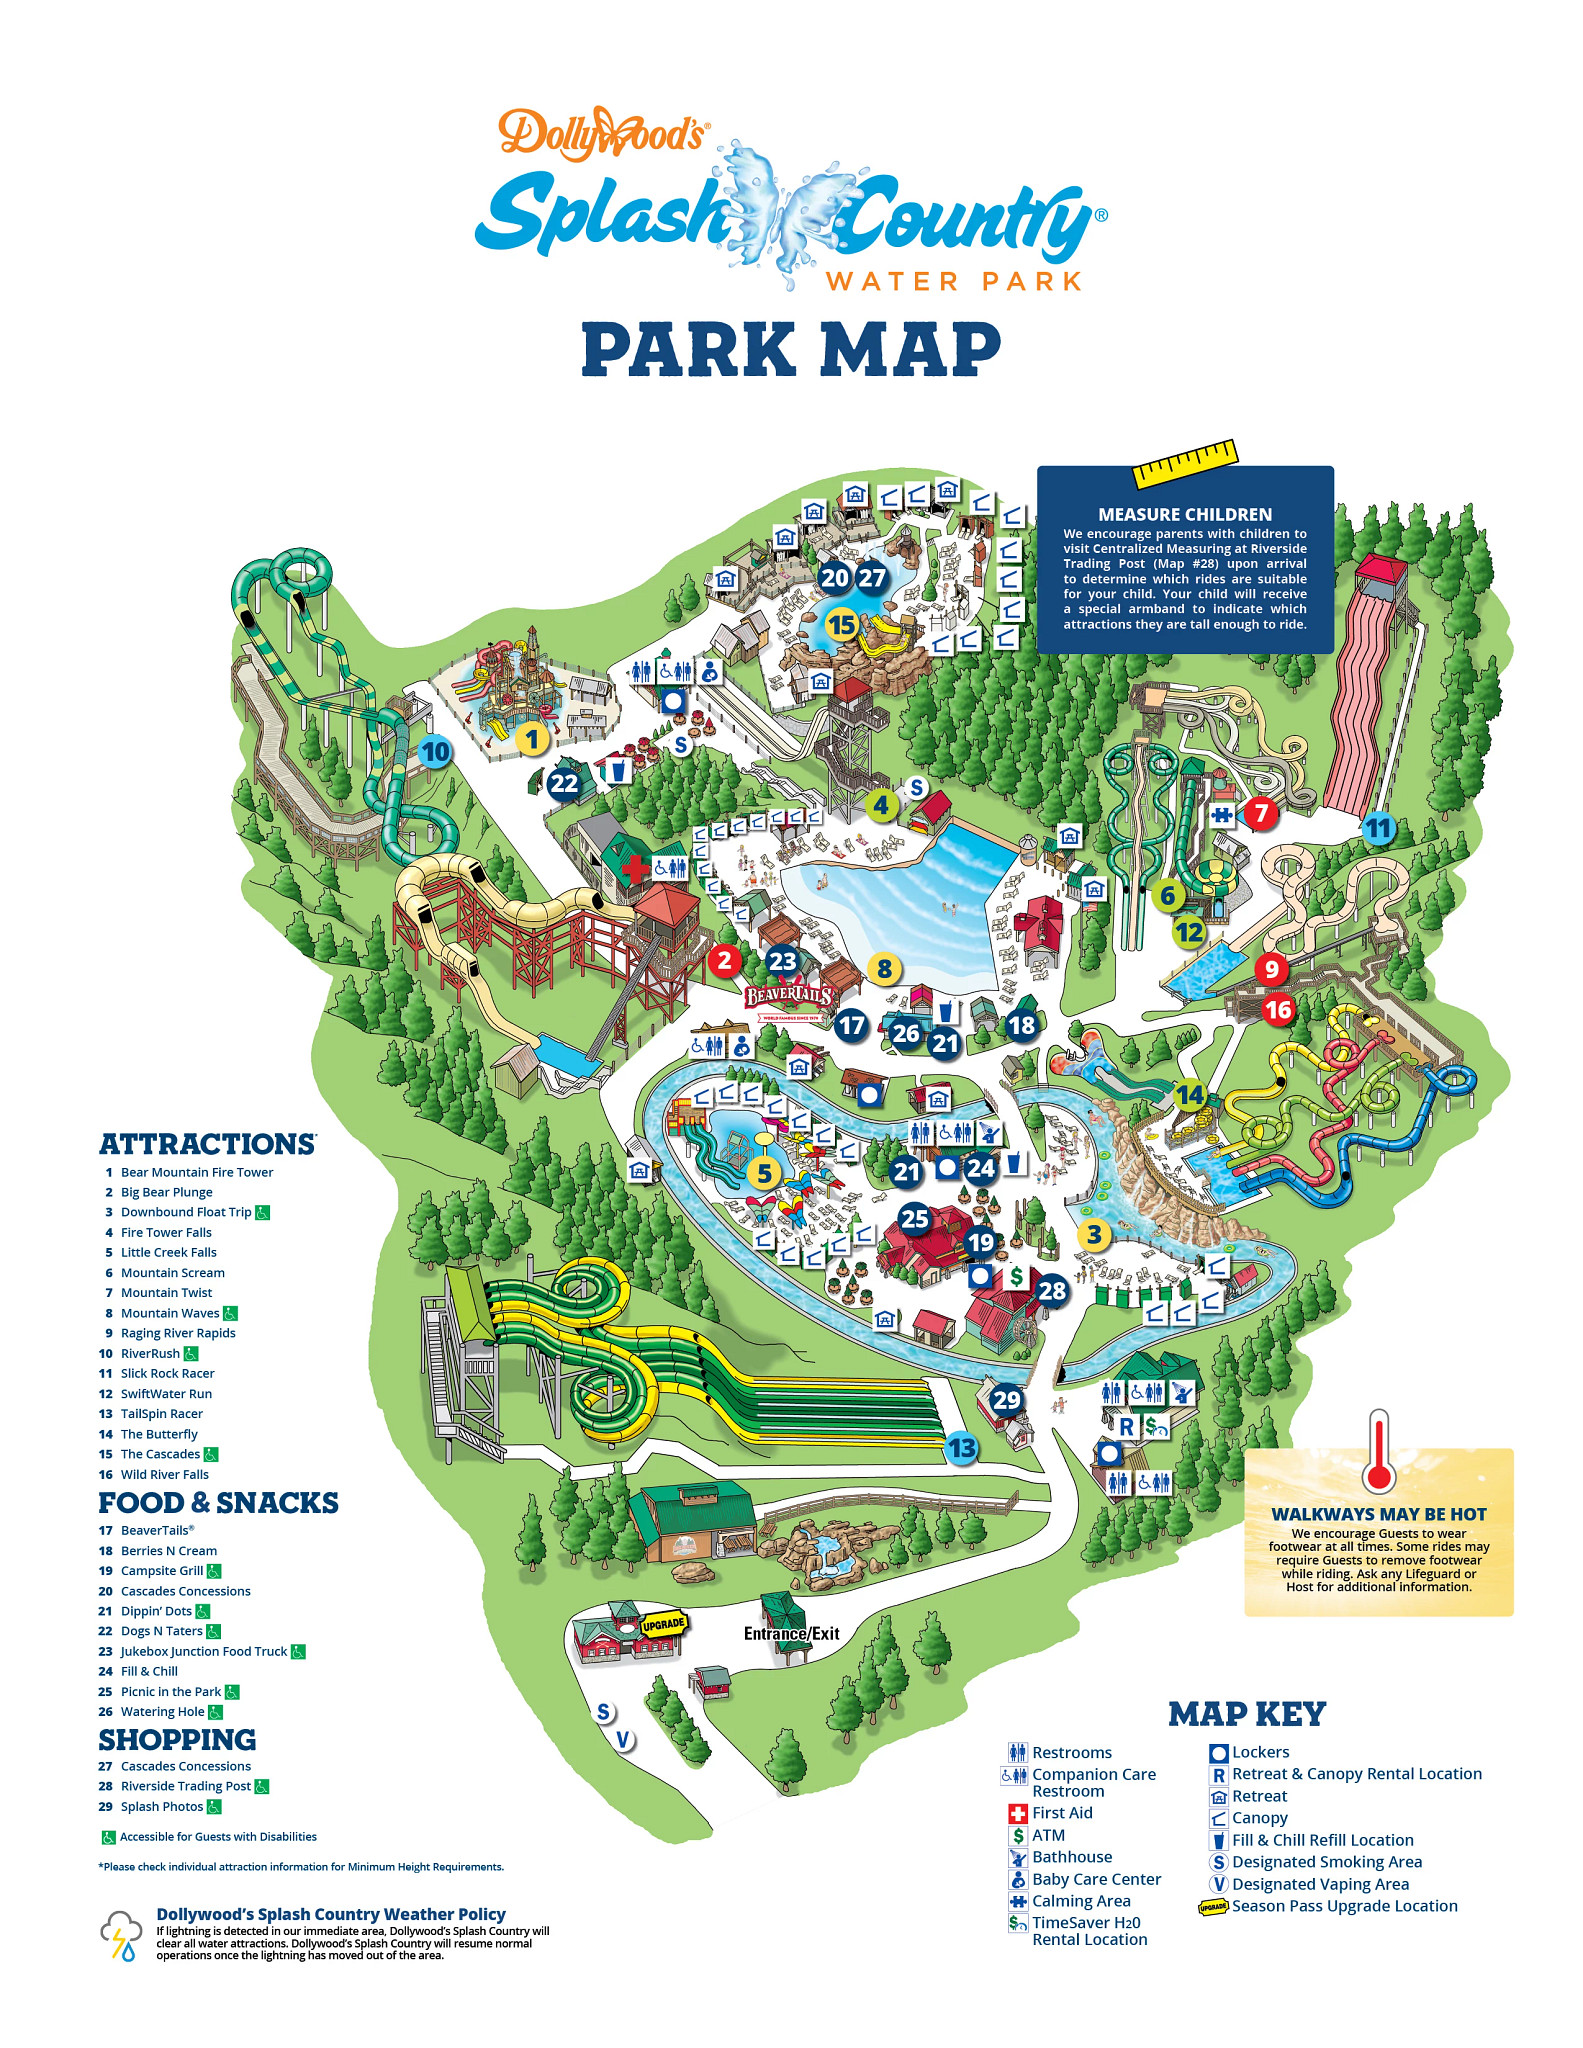 2021 Dollywood's Splash Country Park Map